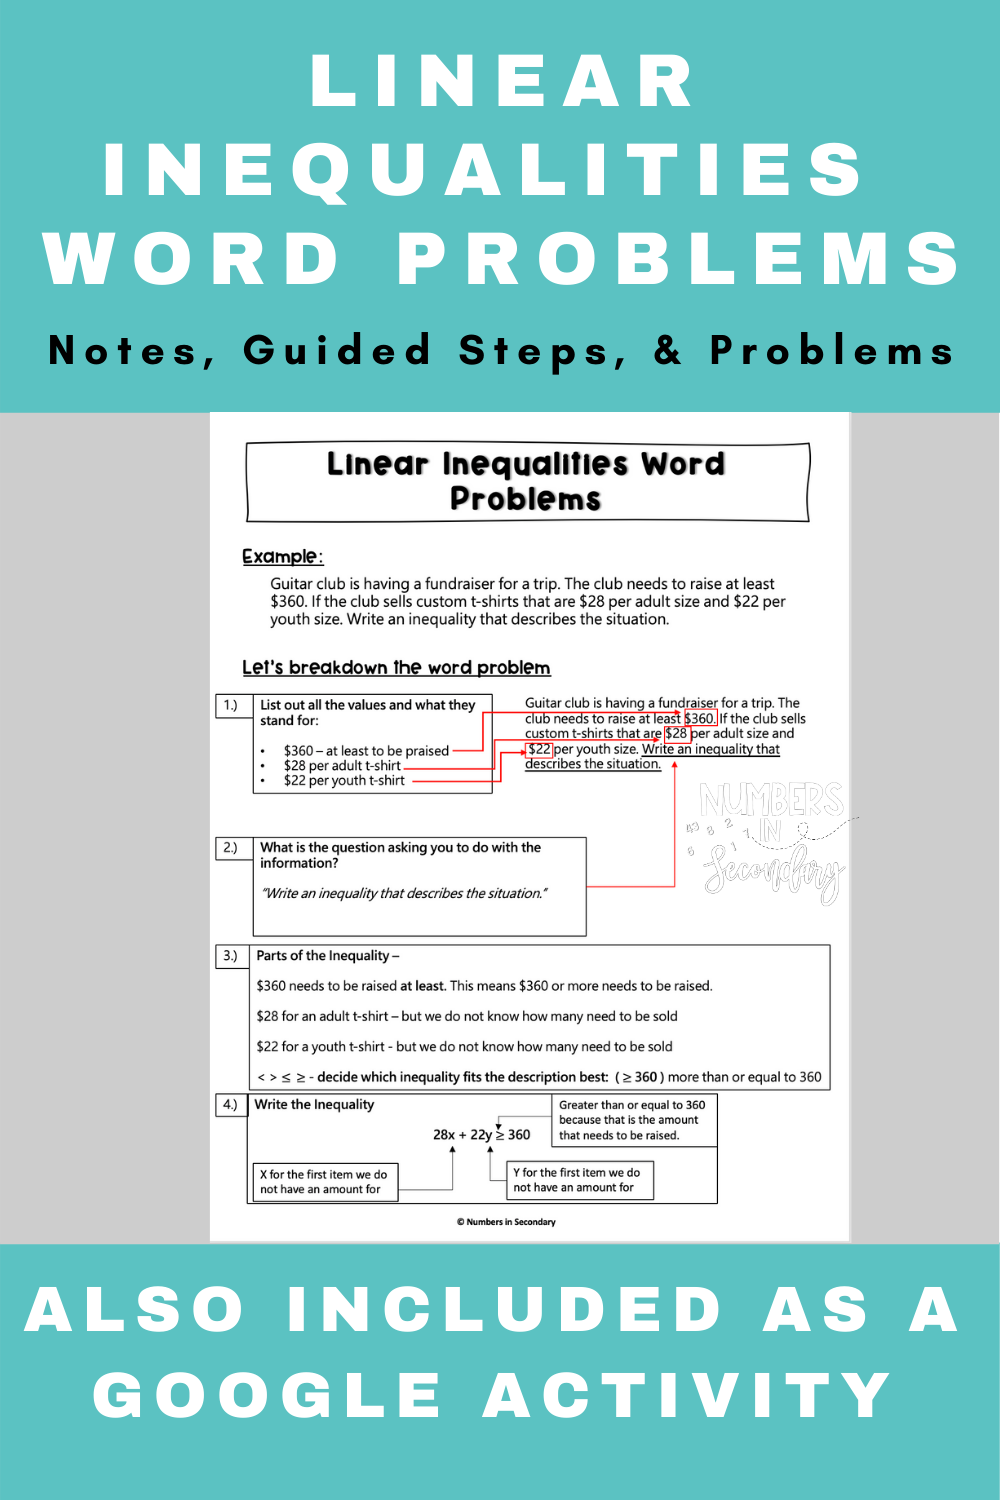 Linear Inequalities Word Problems Worksheet Word Problem Worksheets Word Problems Inequality Word Problems